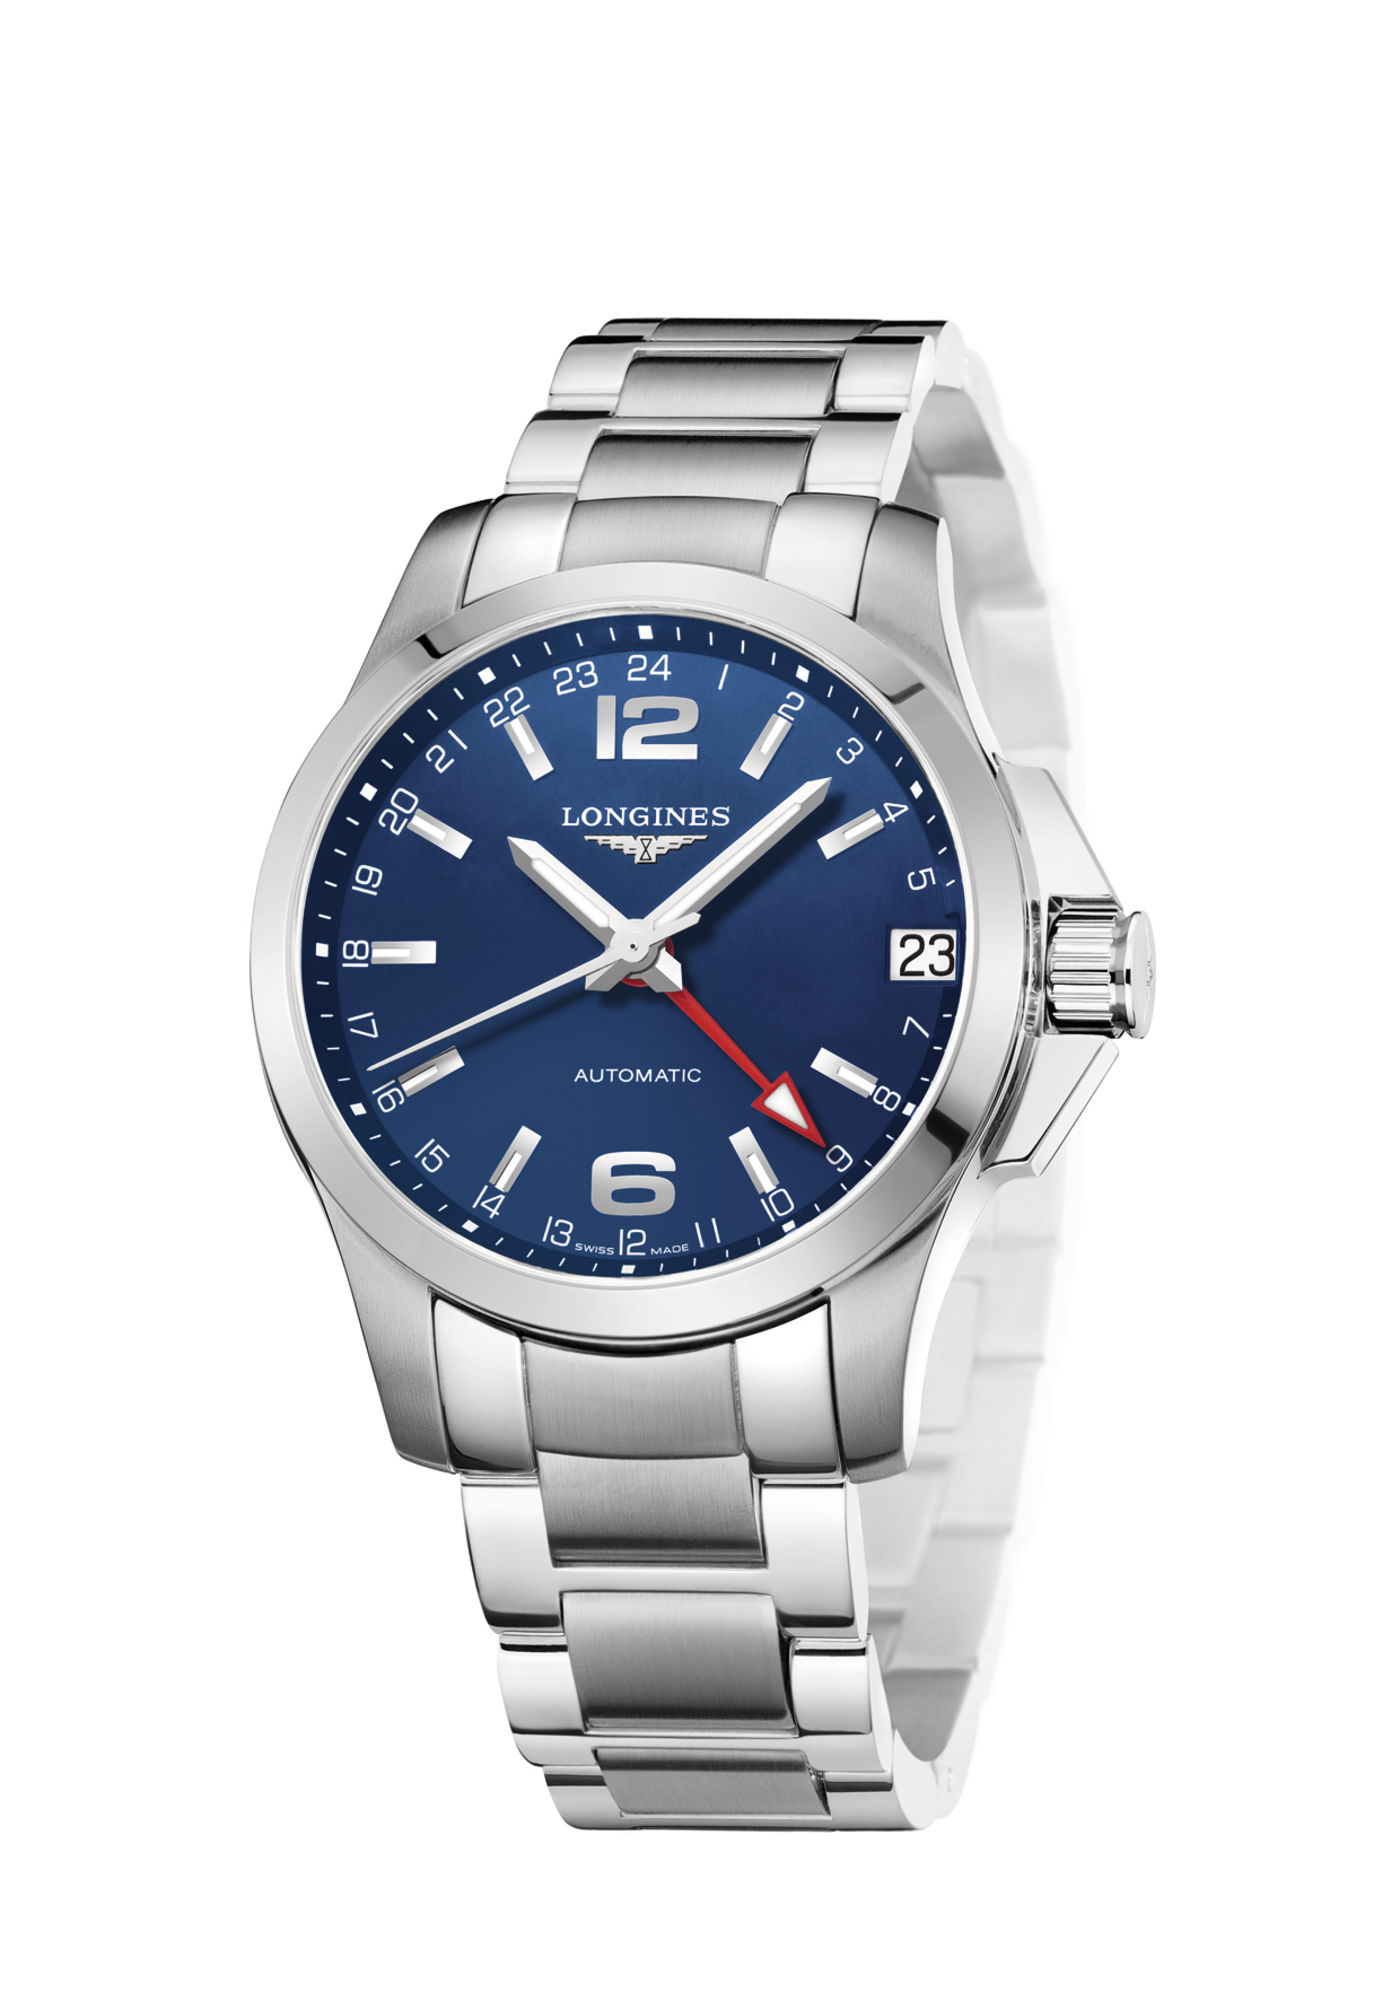 Longines Conquest 24 hours Watch 4